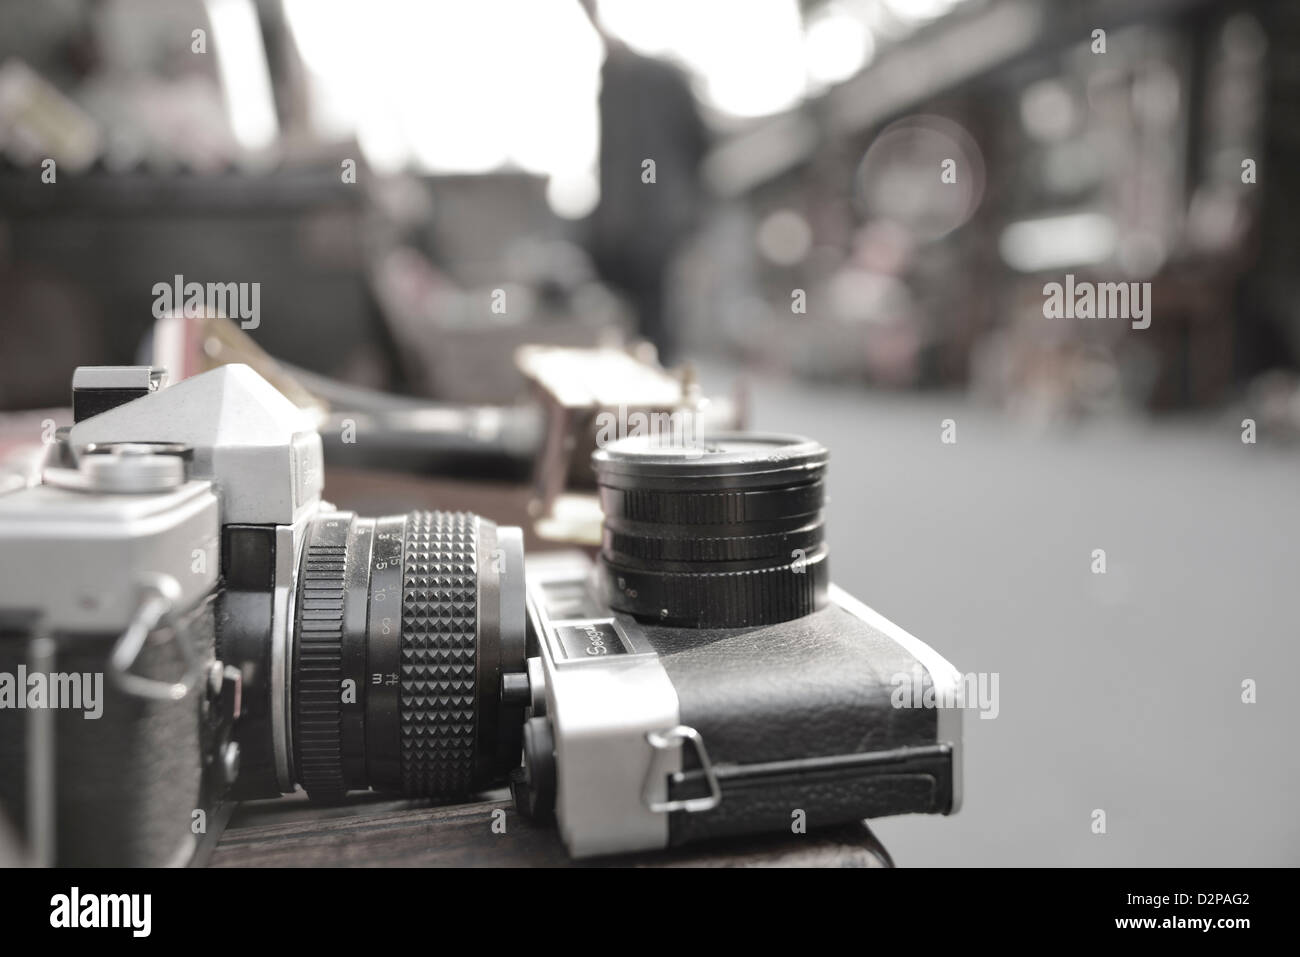 Old and classical cameras placed on top of table along the street side, Shanghai, China. - Stock Image